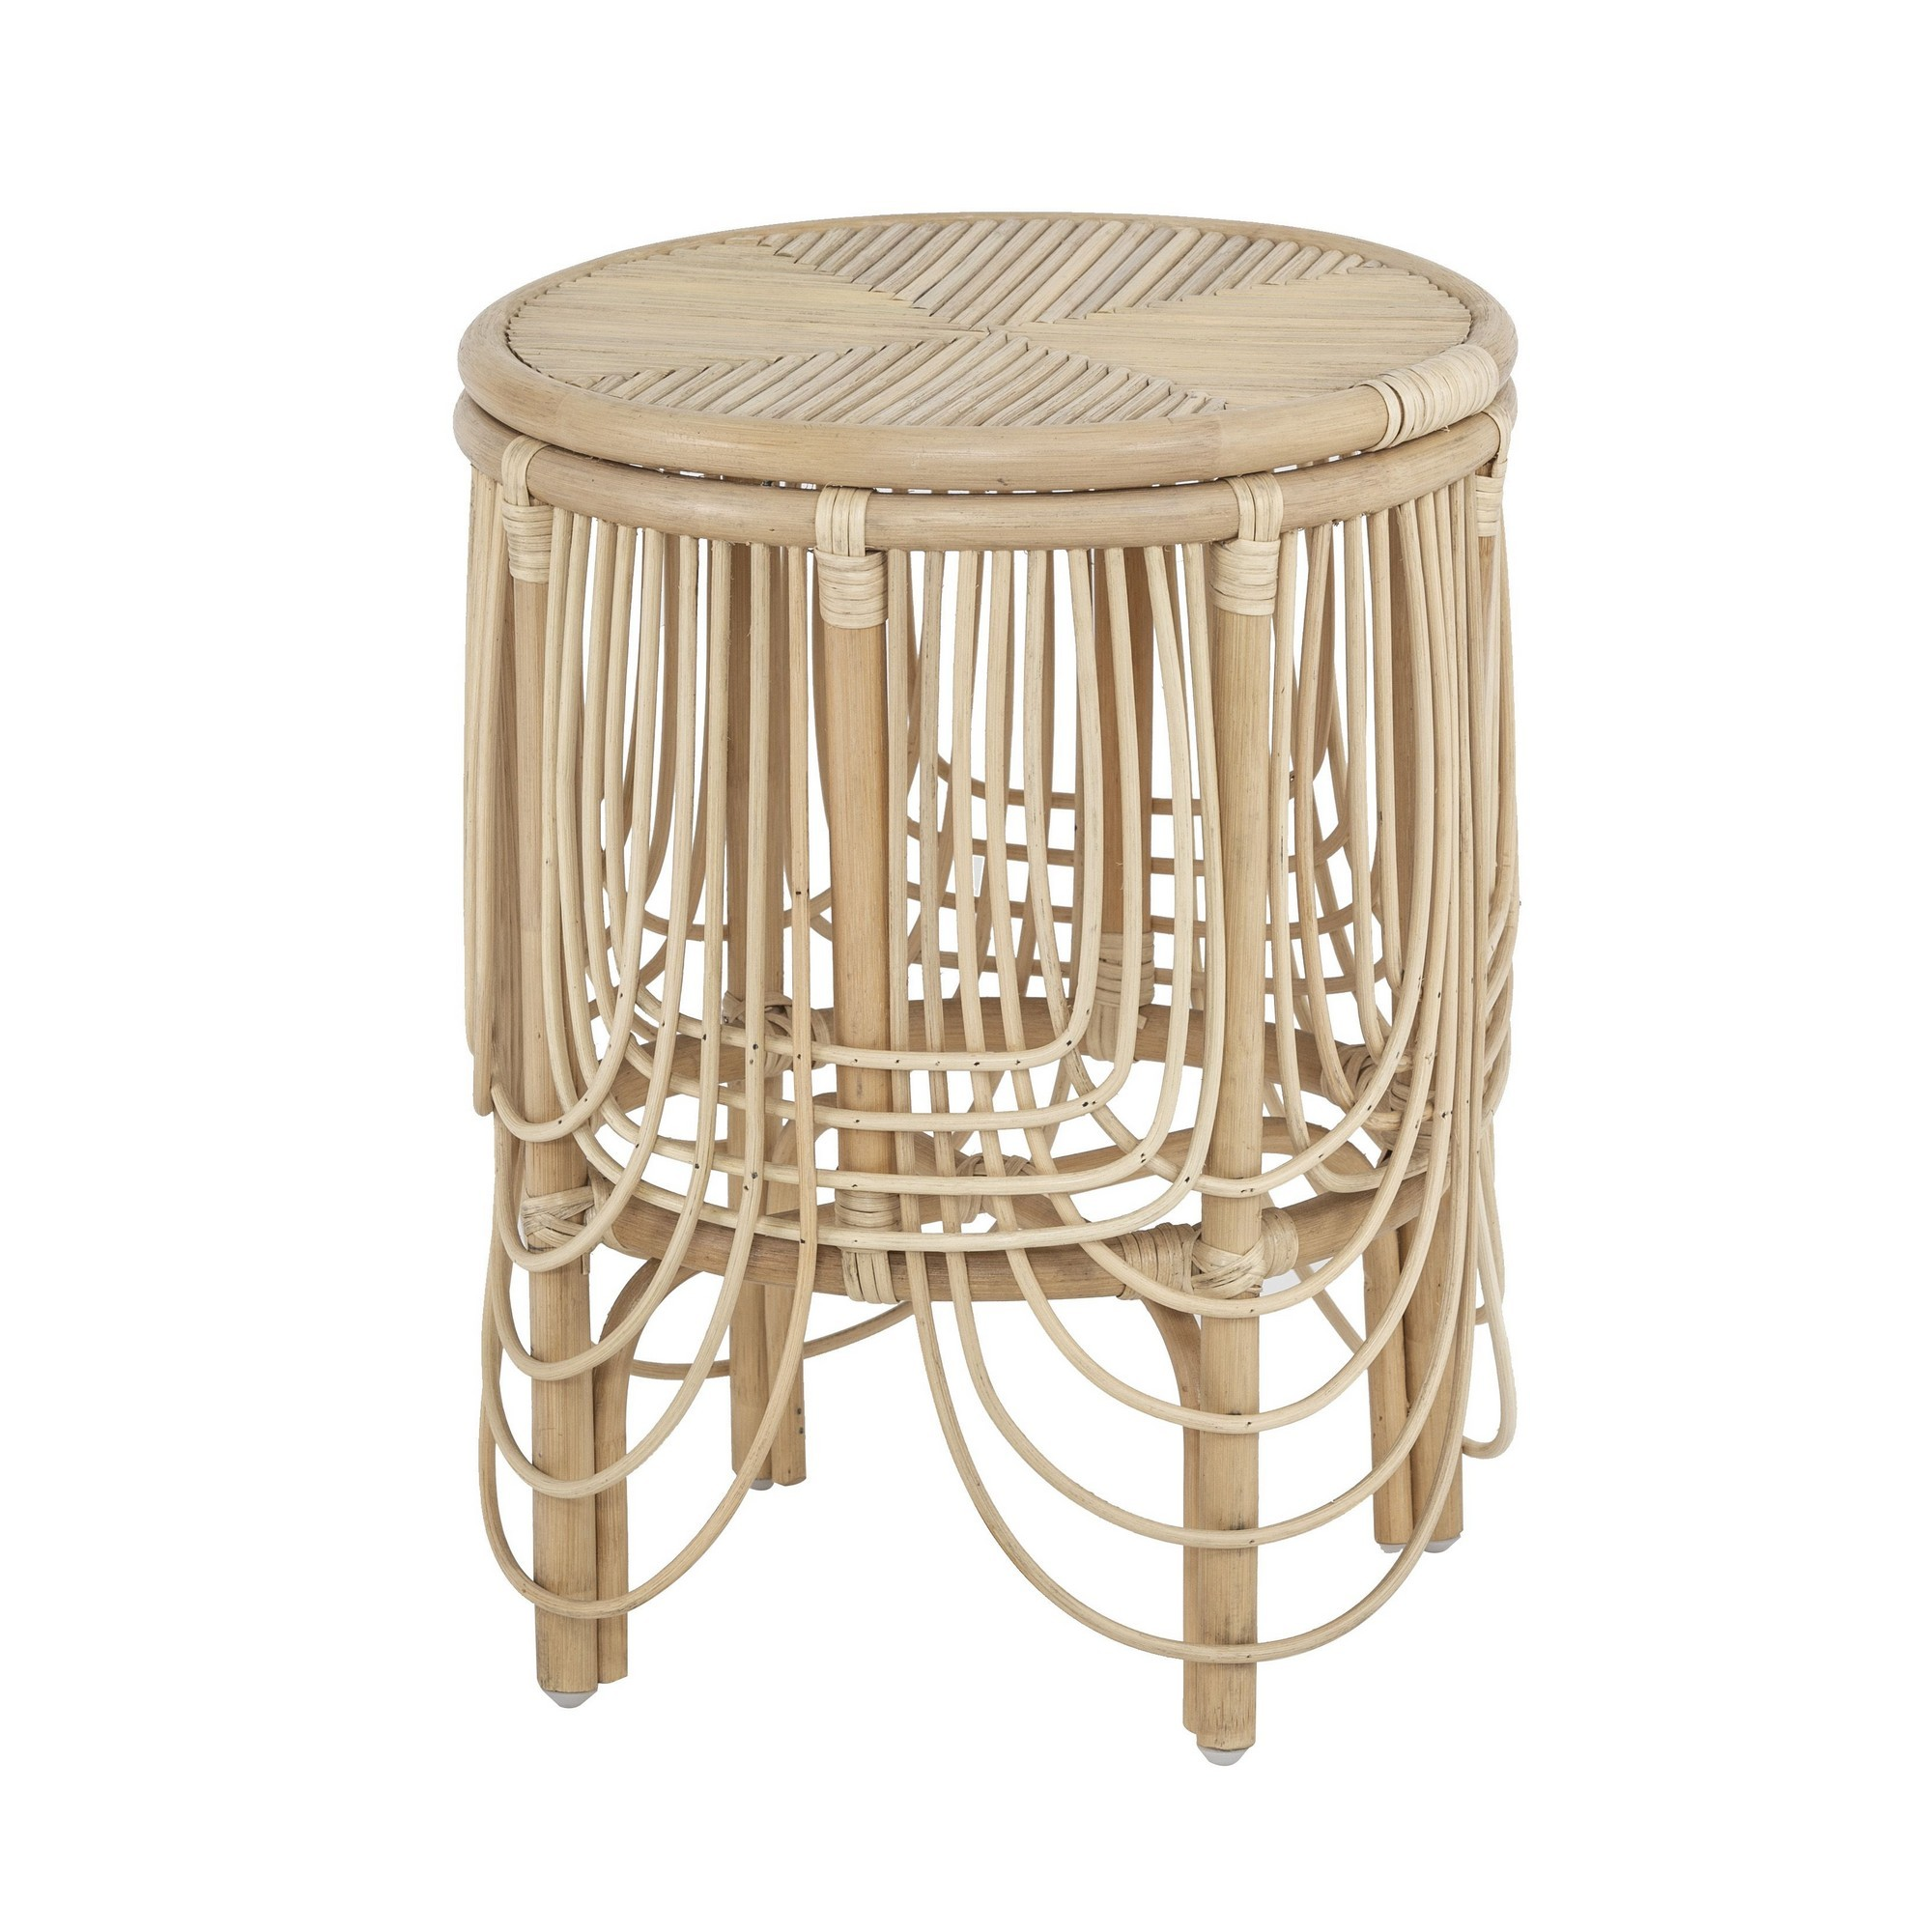 Belize Rattan Round Side Table